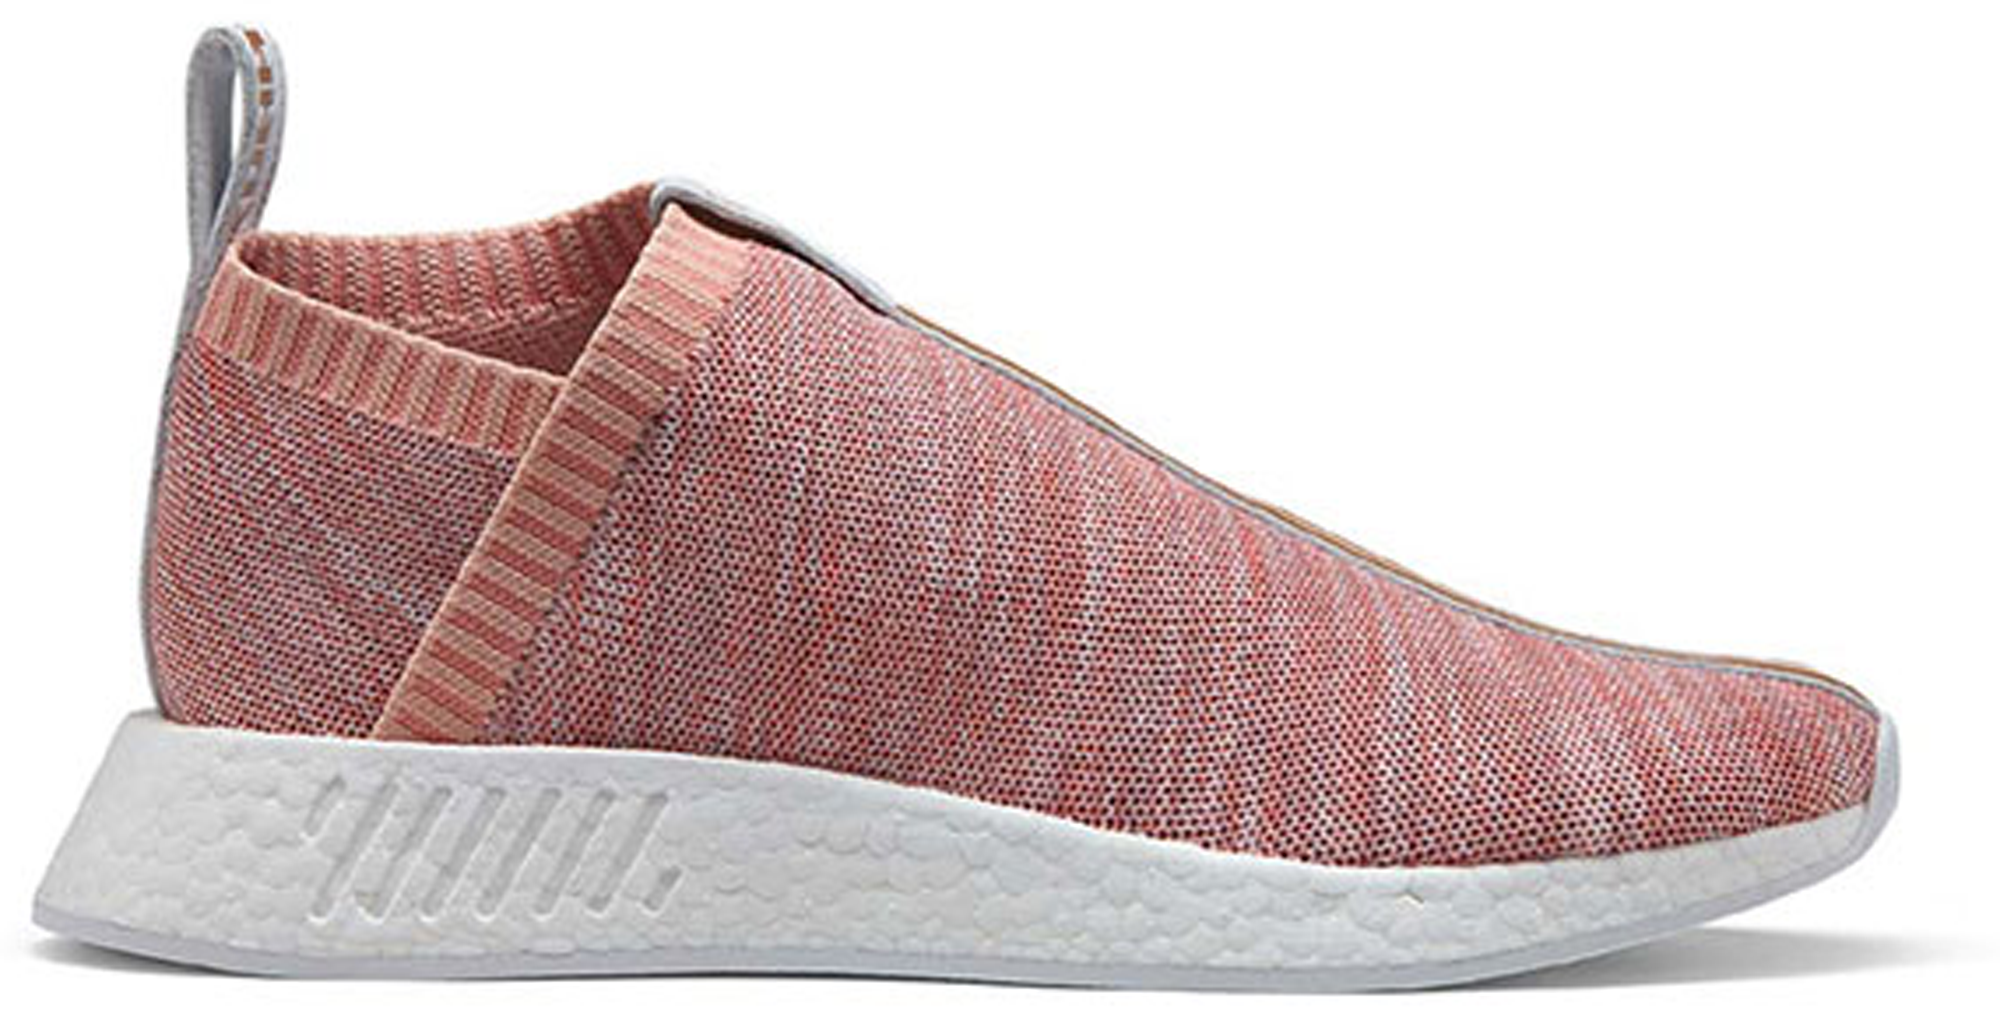 Kith x Naked x adidas NMD CS2 Women s Pink - StockX News 3f0325ff20